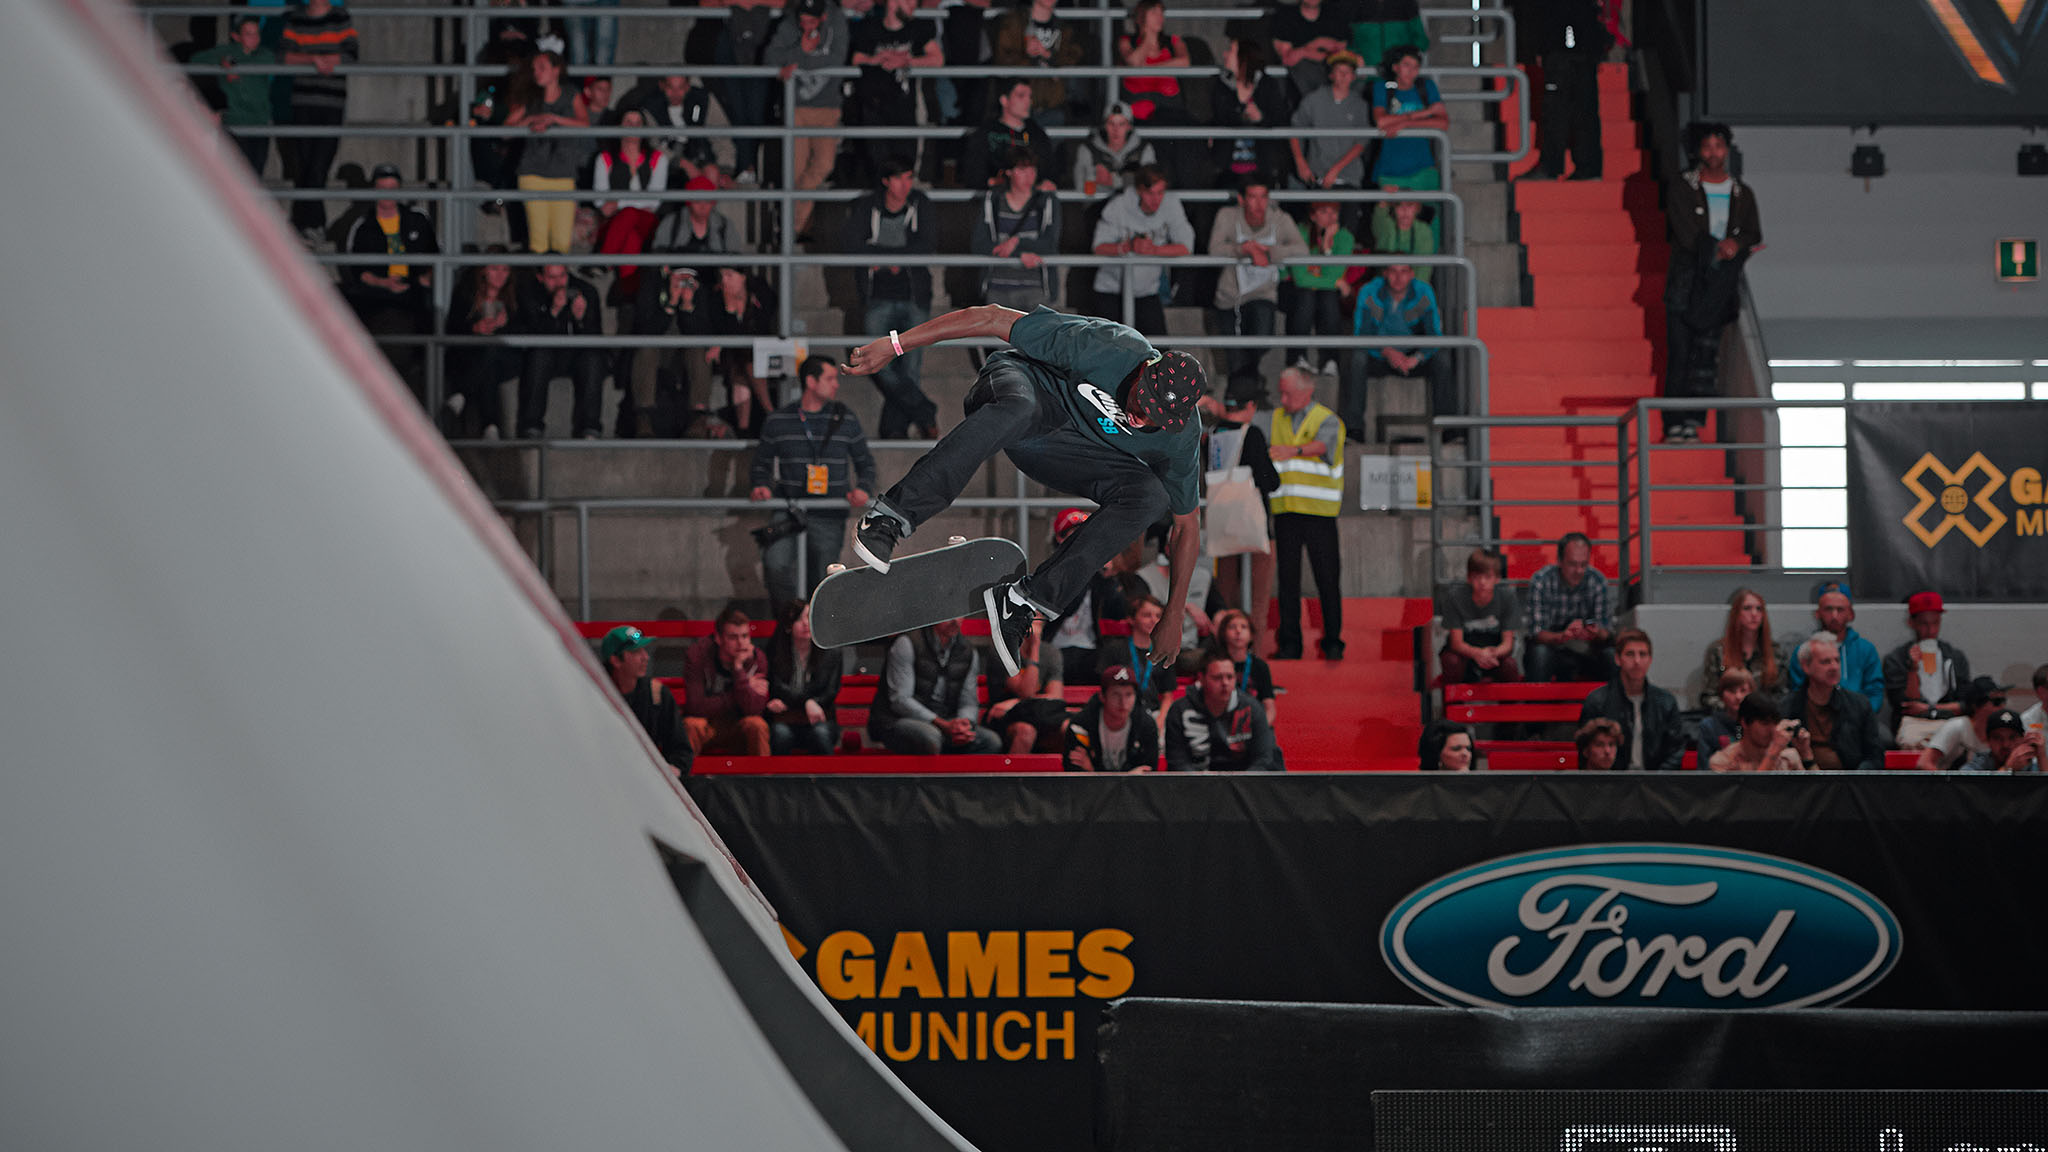 Ishod Wair skated the course with reckless abandon and qualified for Sunday's Street League at X Games finals. Wair joined Street League in 2012, and until this weekend in Munich, he had never qualified for a final event.